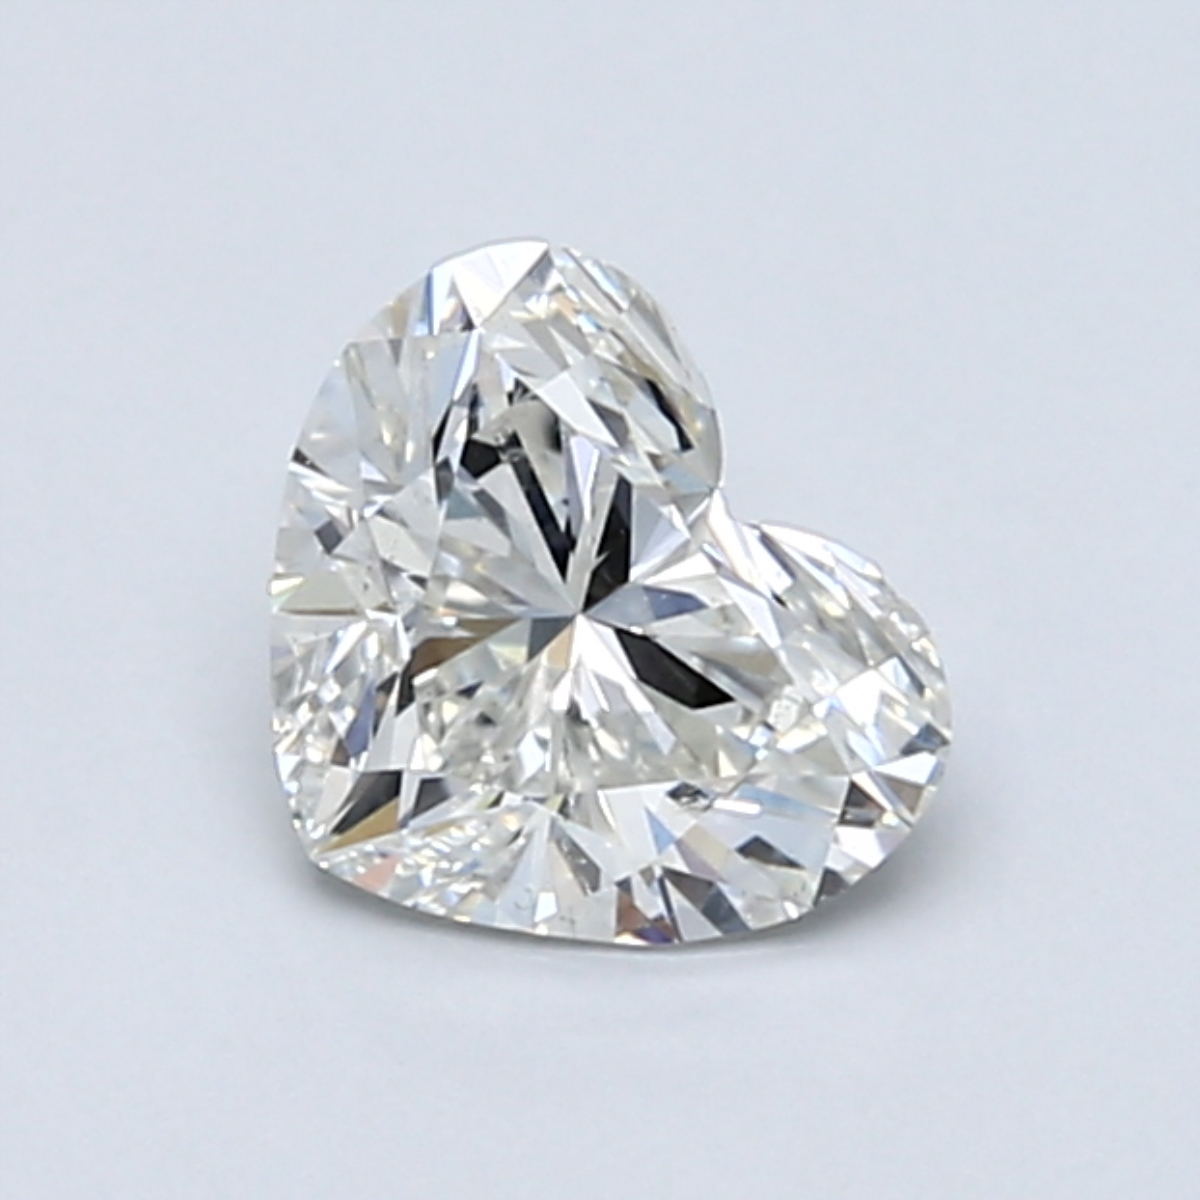 0.90-Carat Heart Shaped Diamond by Blue Nile